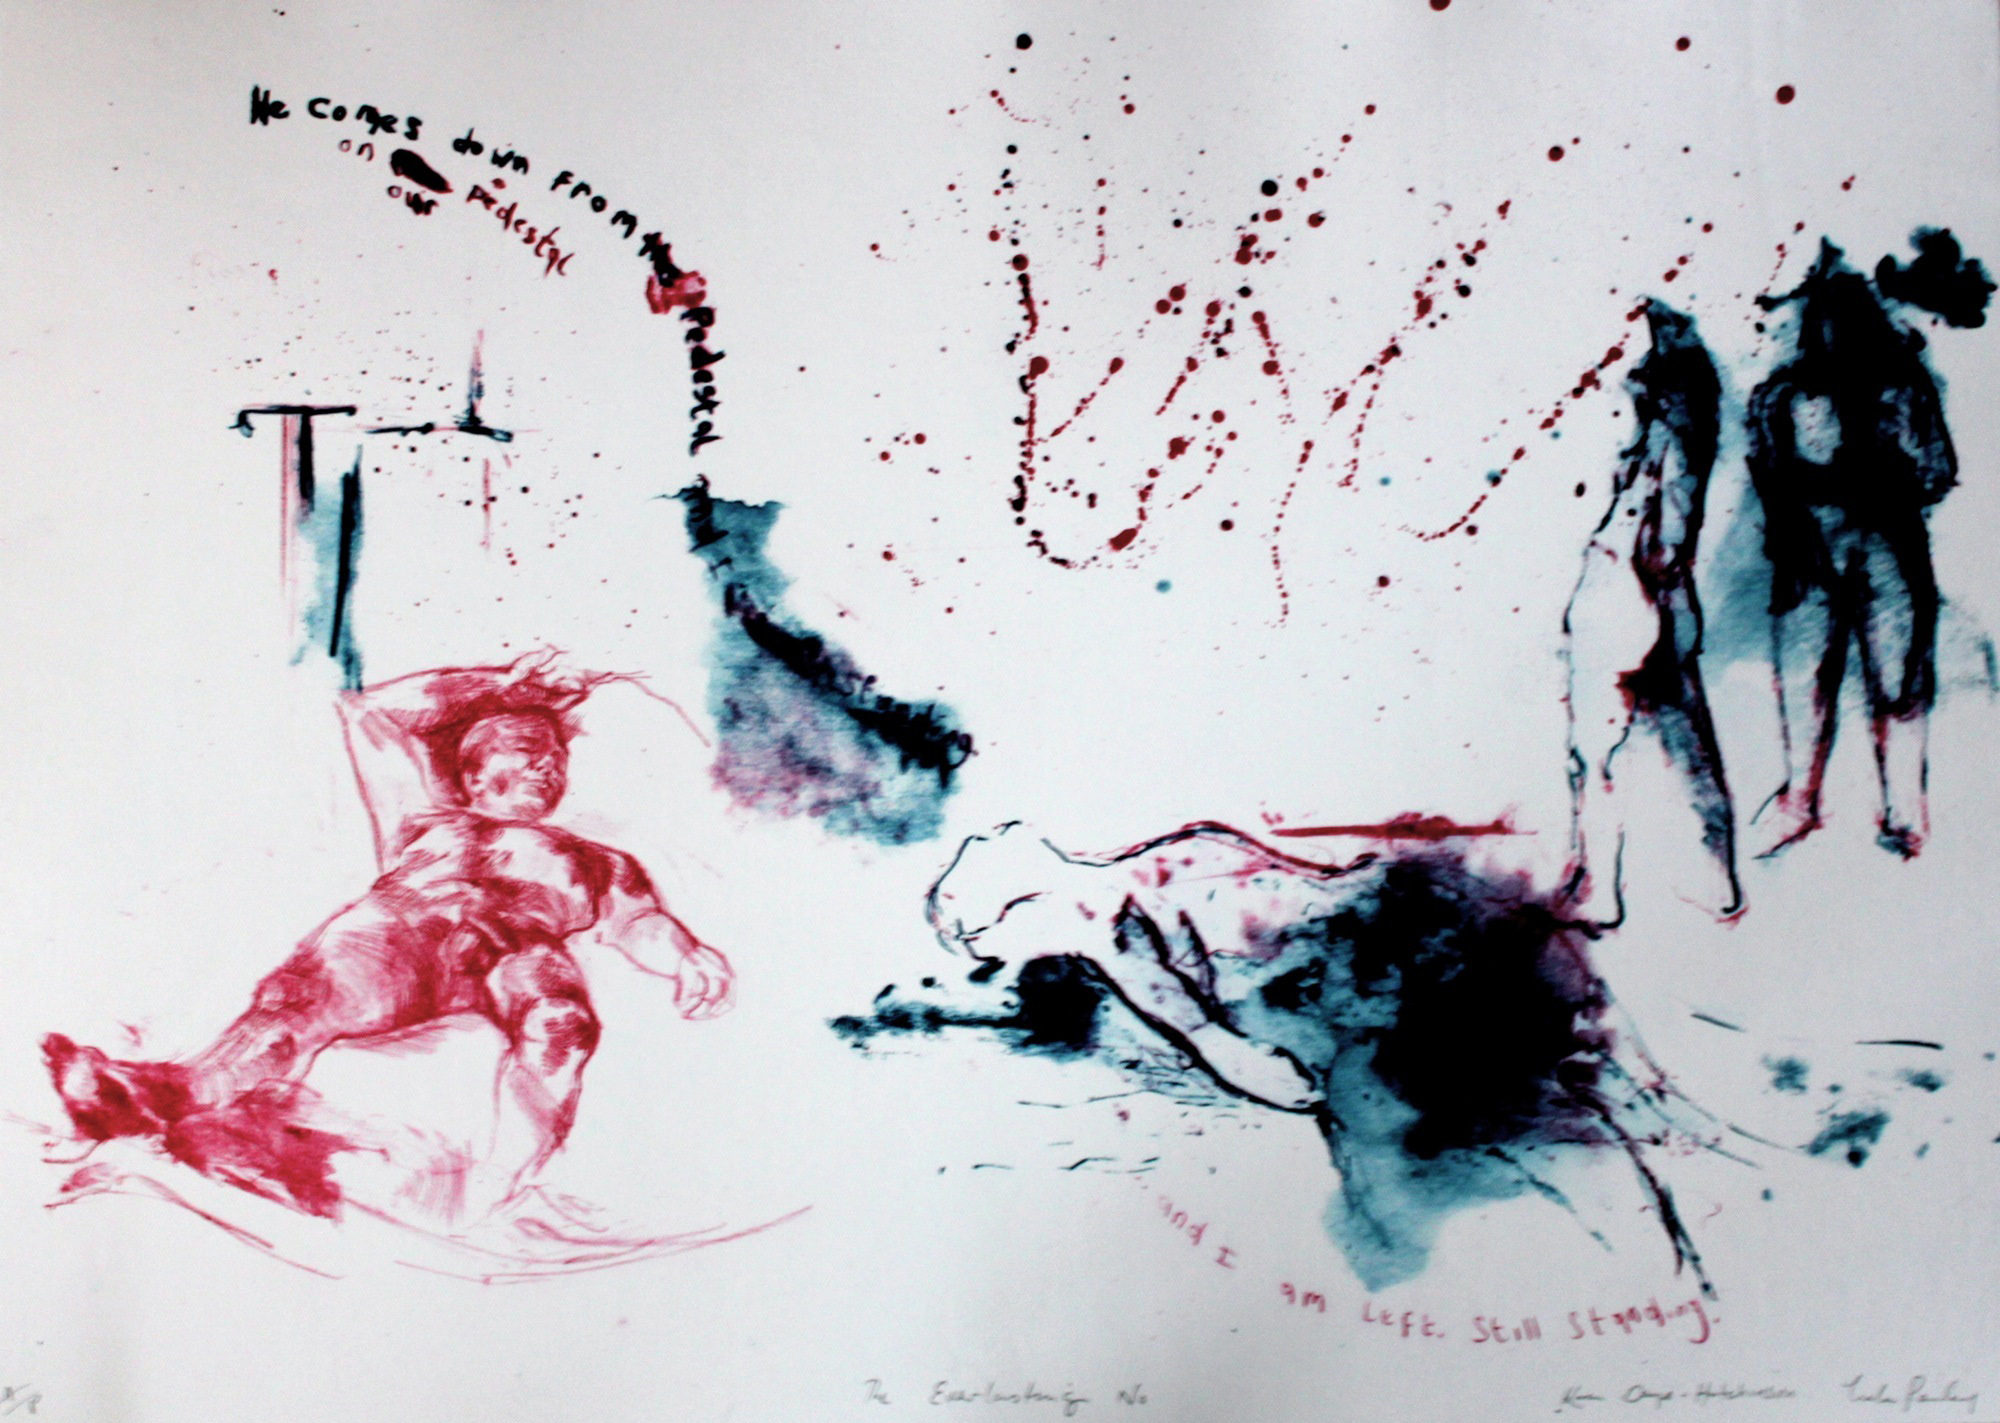 The-Everlasting-No-Collaborative-Lithograph-from-Stone-Variable-70-x-50cm.jpg